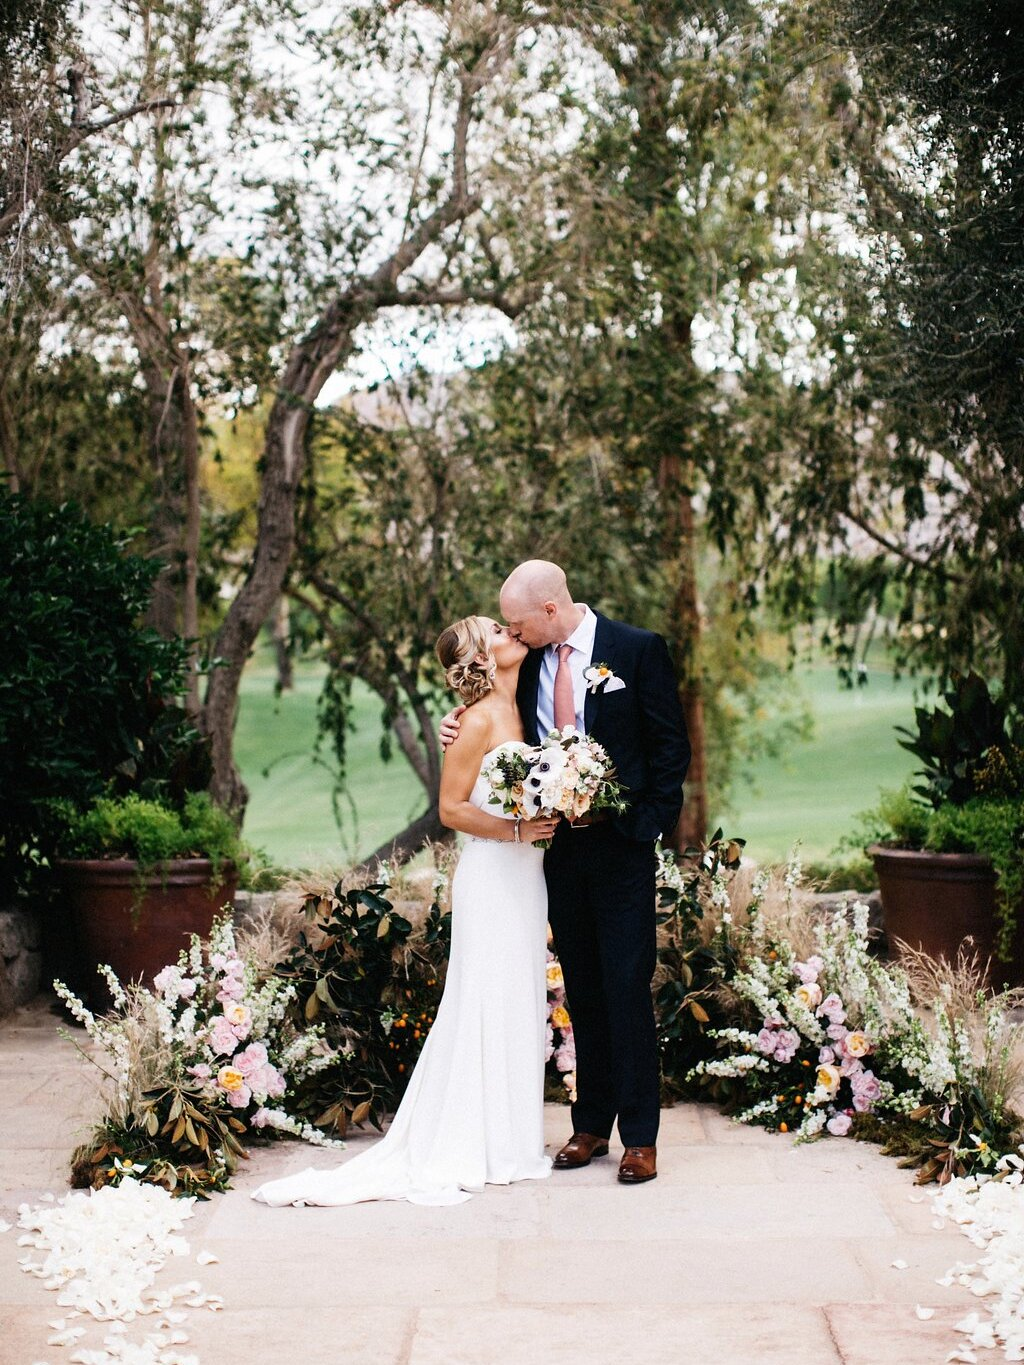 These New Wedding Ideas Are Everything We Dream Of | Real Simple